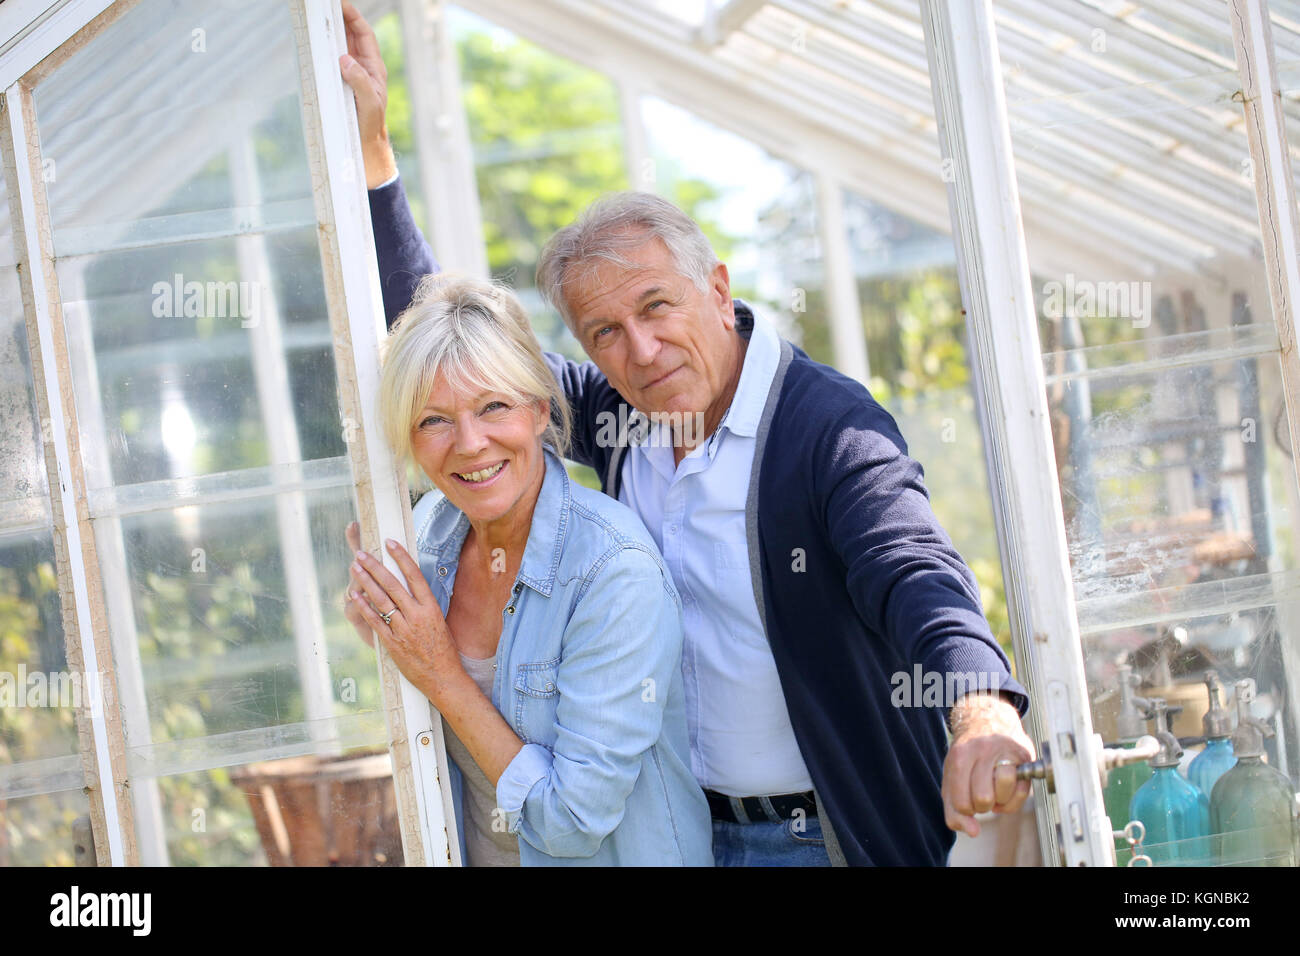 Senior couple standing by greenhouse in garden - Stock Image